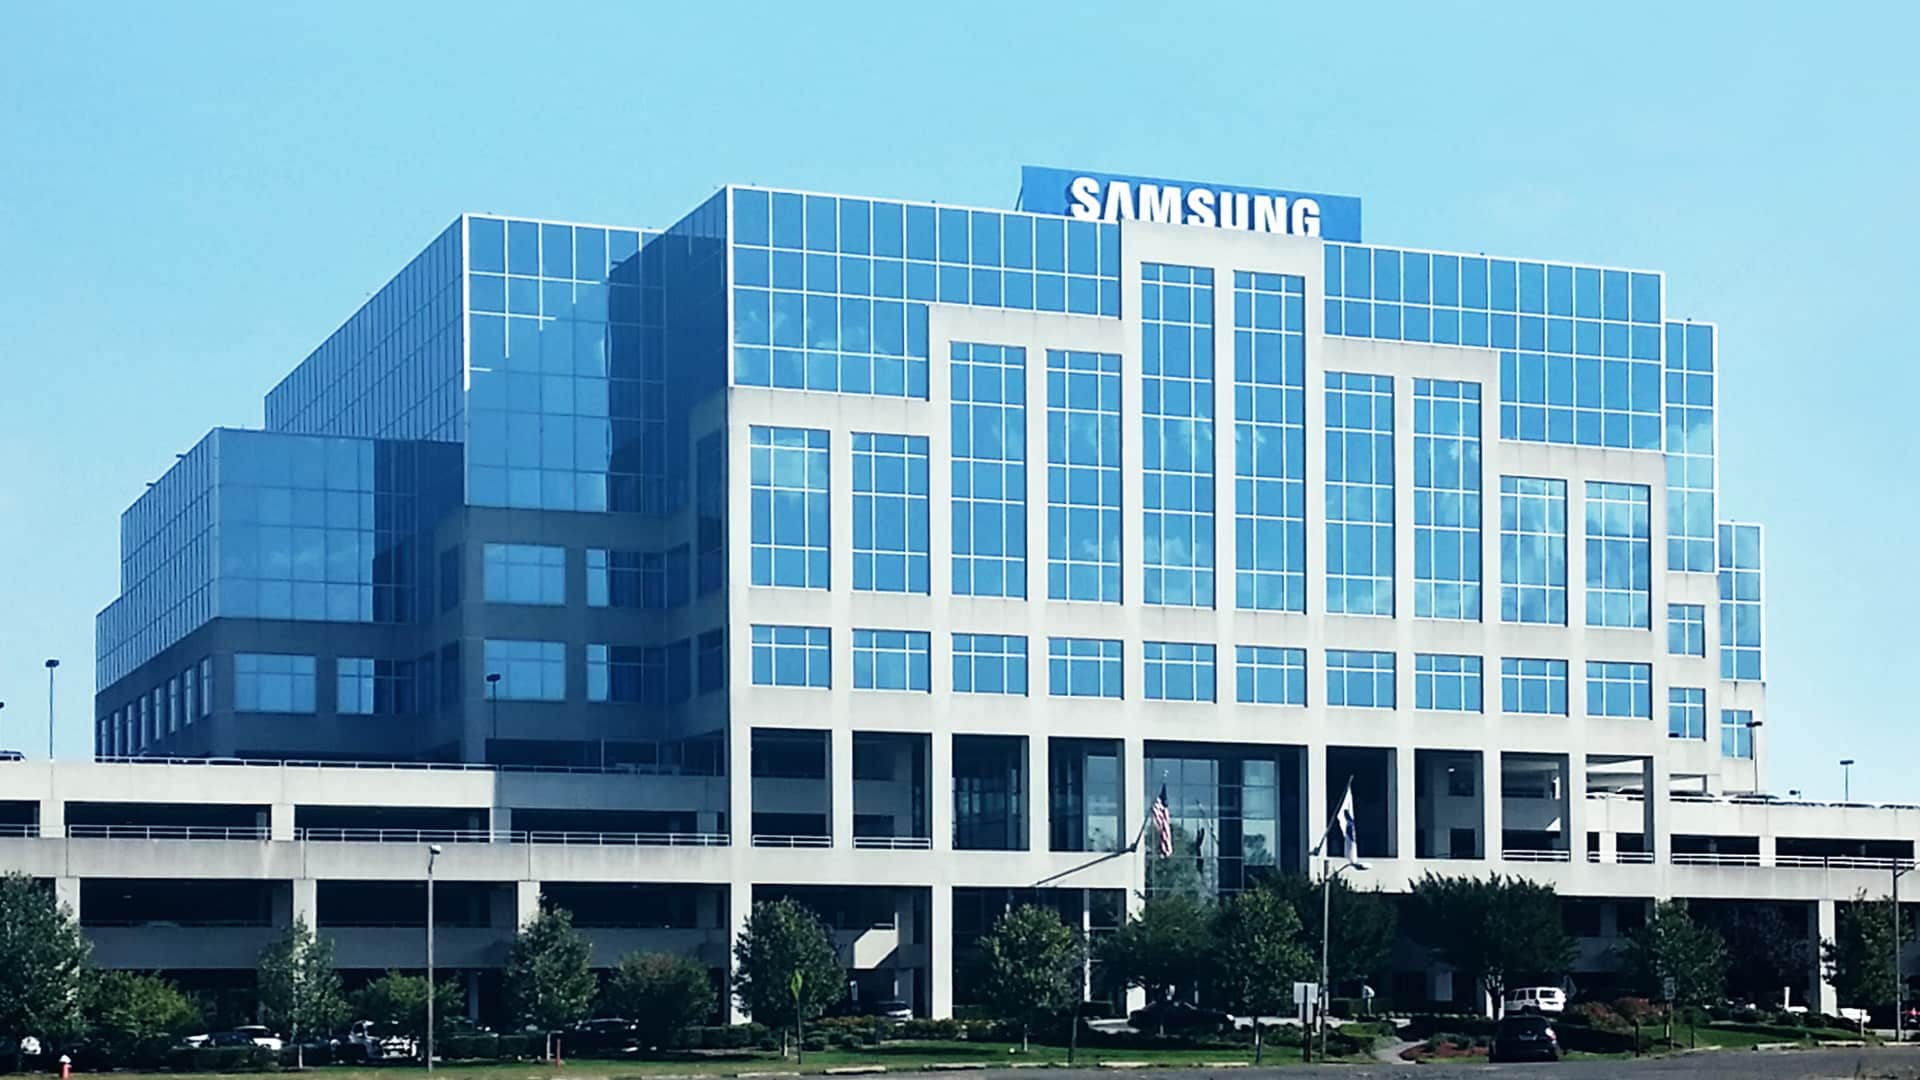 Samsung pledges Rs 37 crore to India's fight against Covid-19